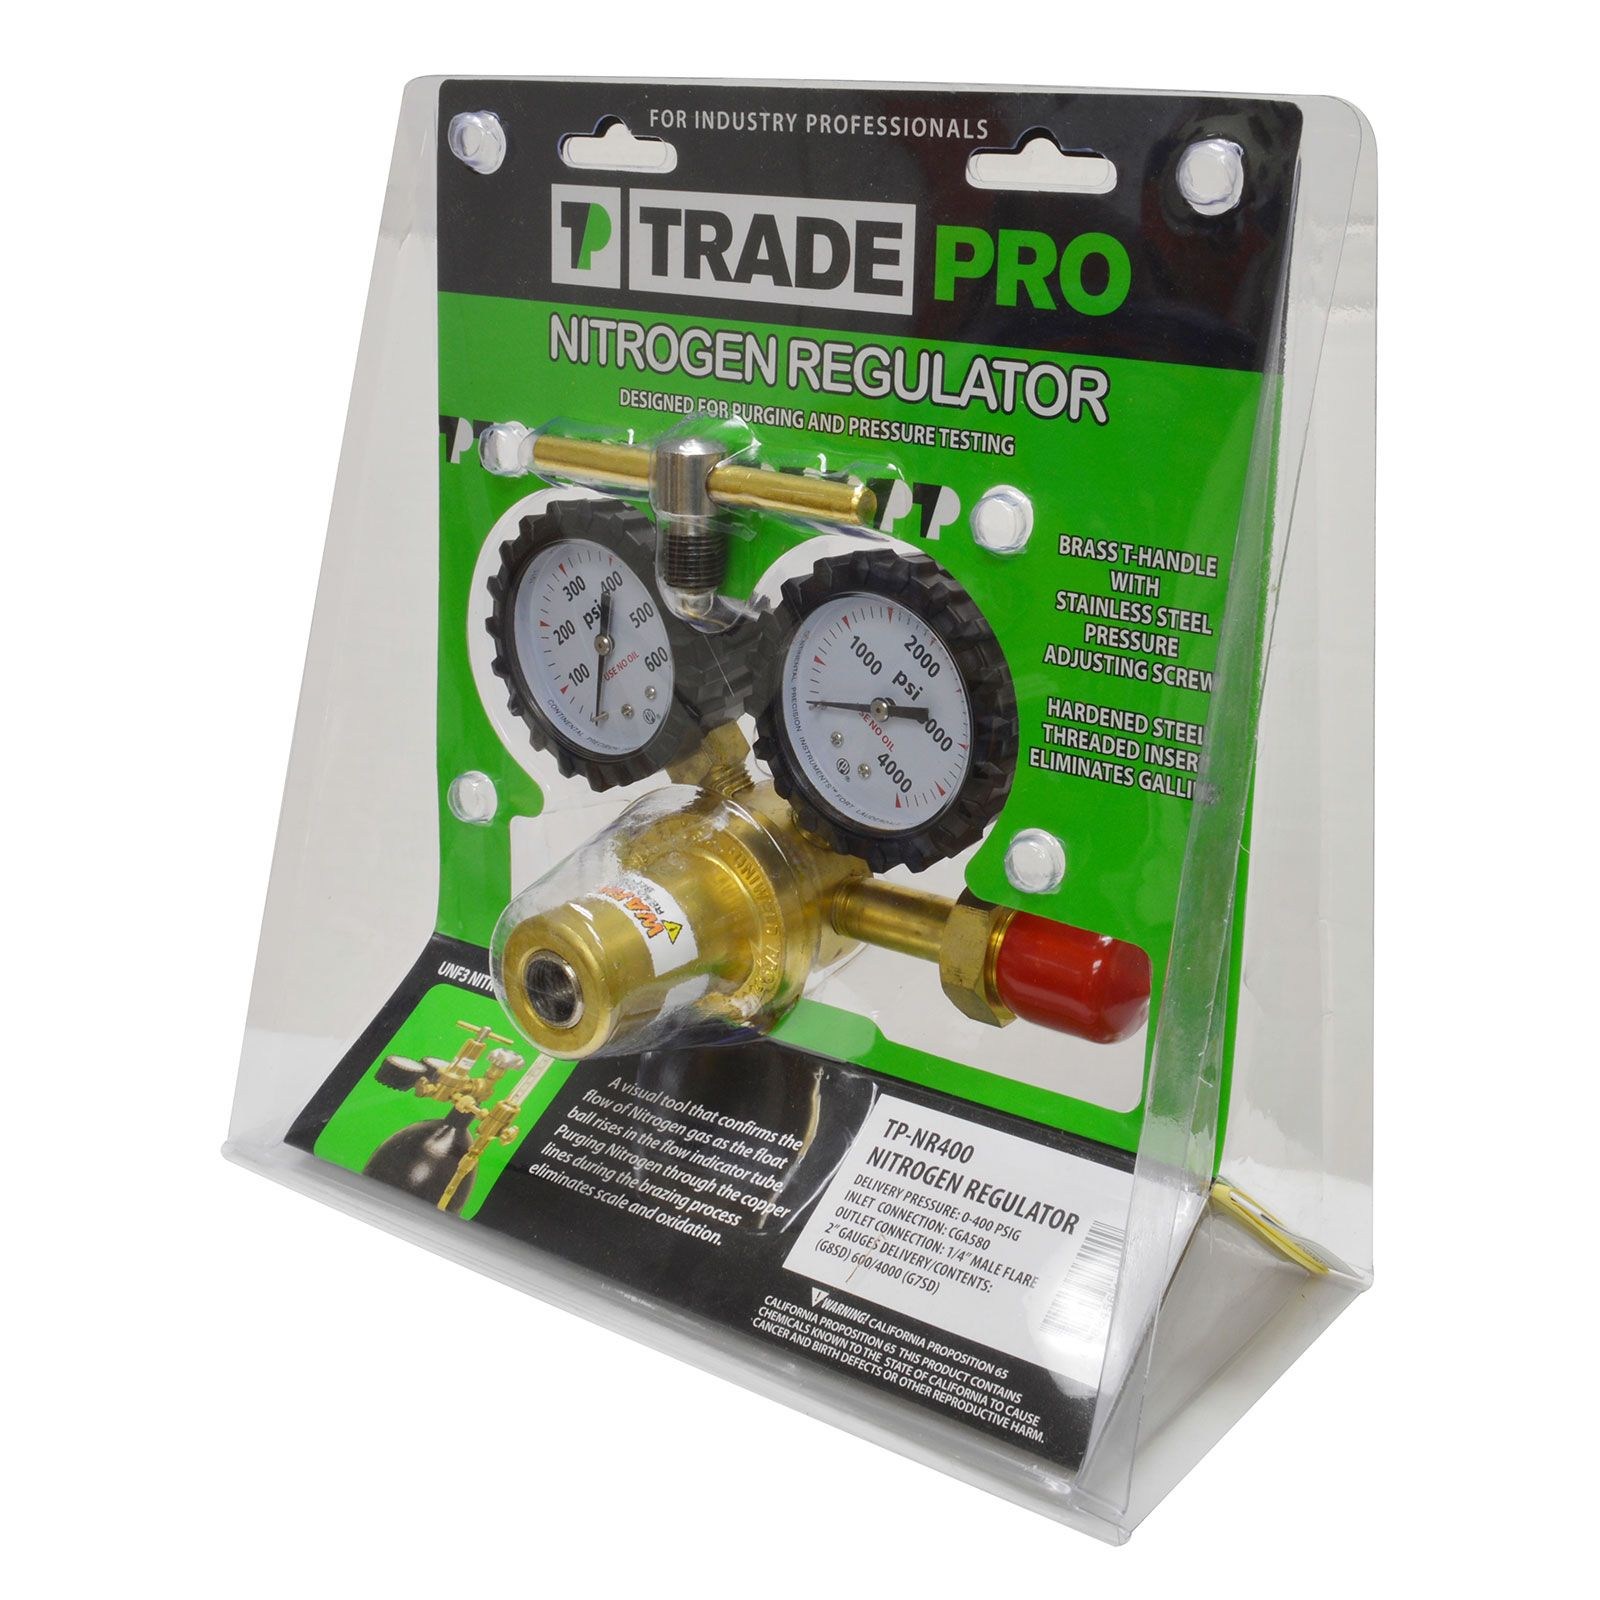 TradePro TP-NR400 - Nitrogen Regulator with a CGA580 Inlet